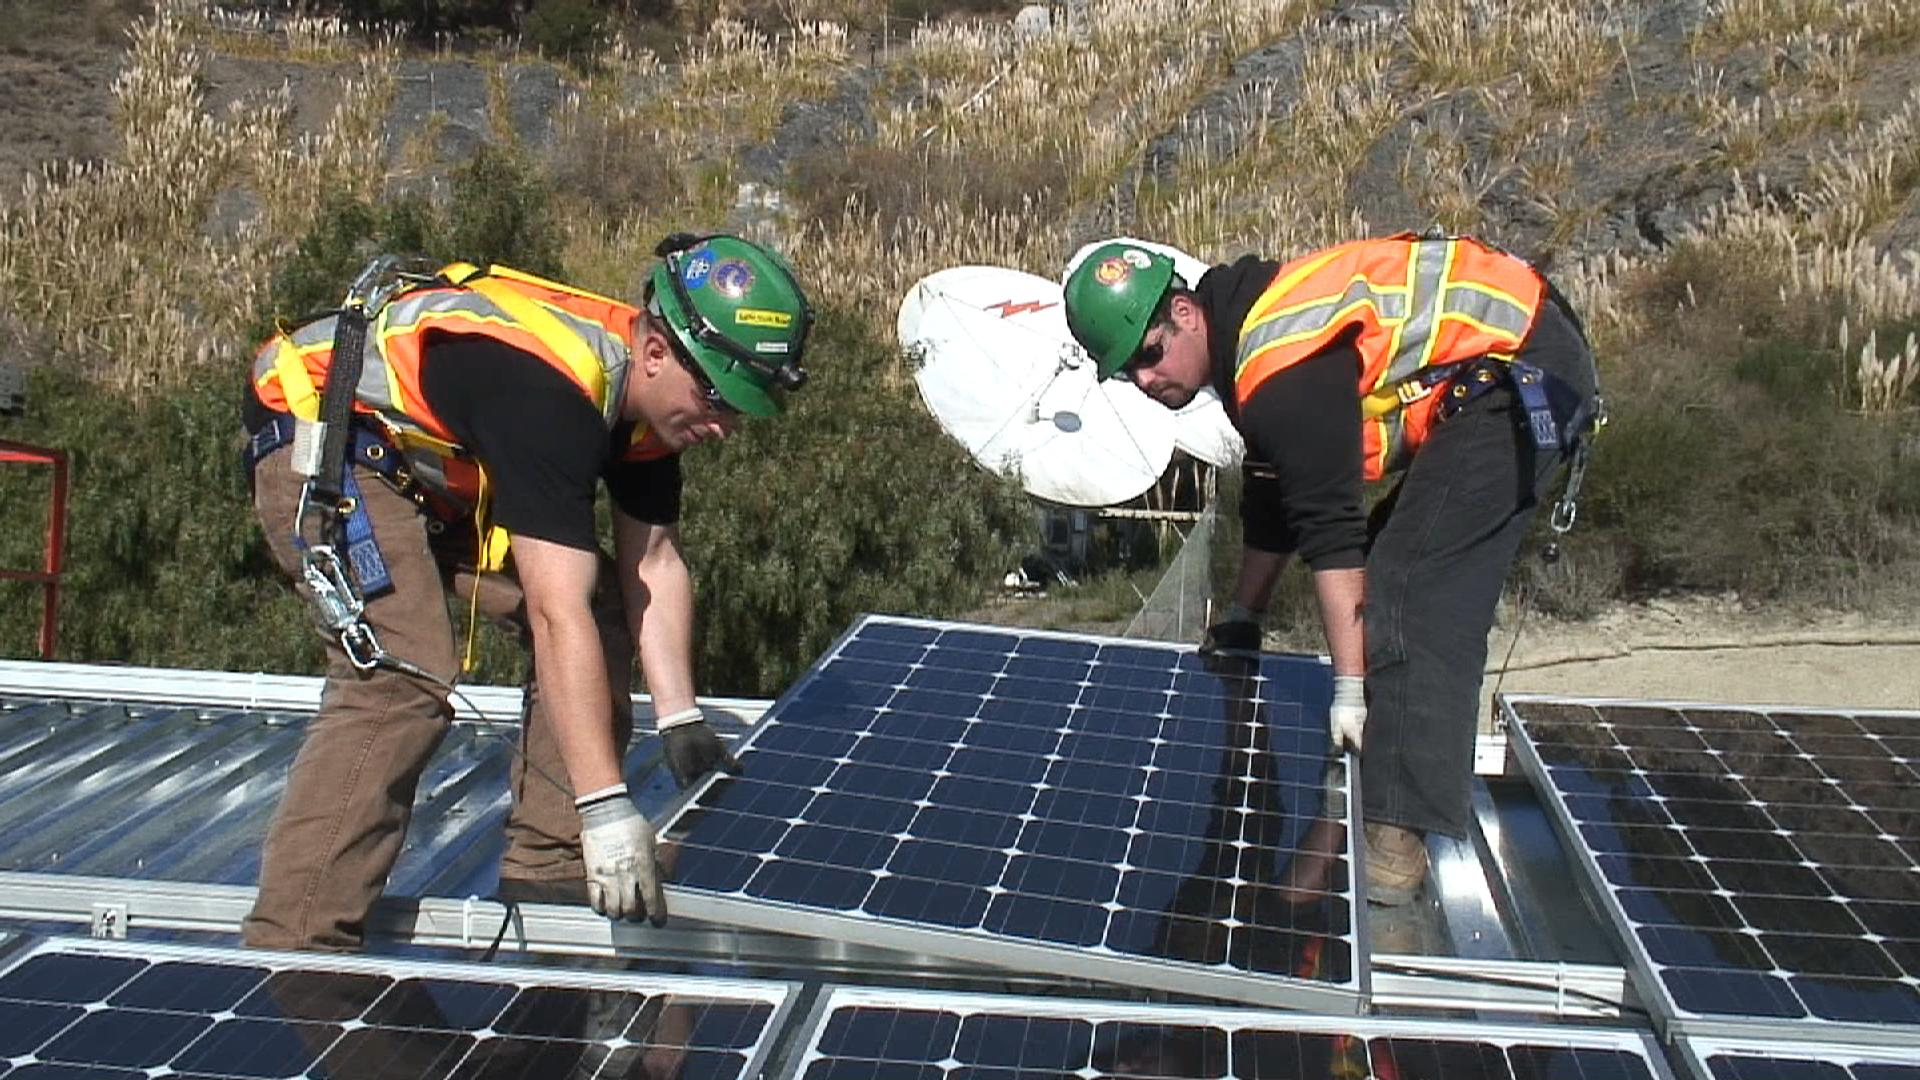 Solar panels at El Cerrito Recycling & Environmental Resource Center